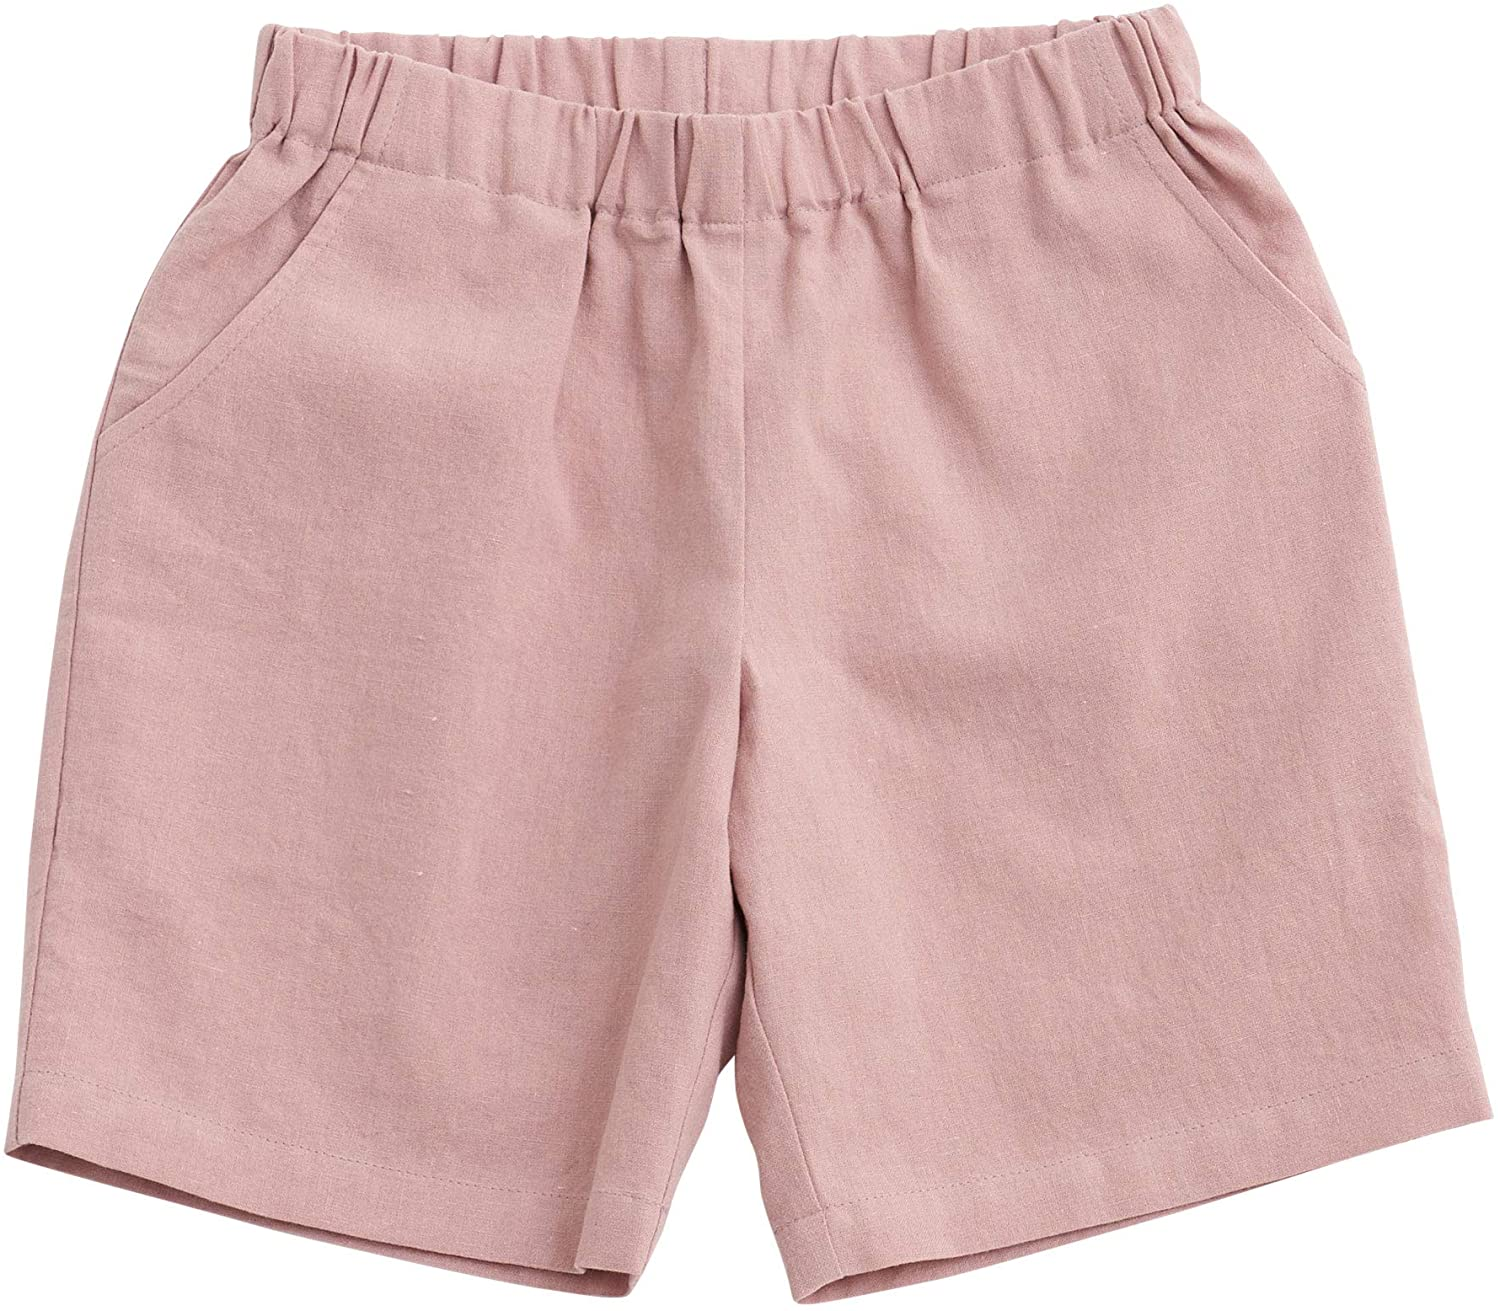 sebien Kids' Linen Basic Shorts